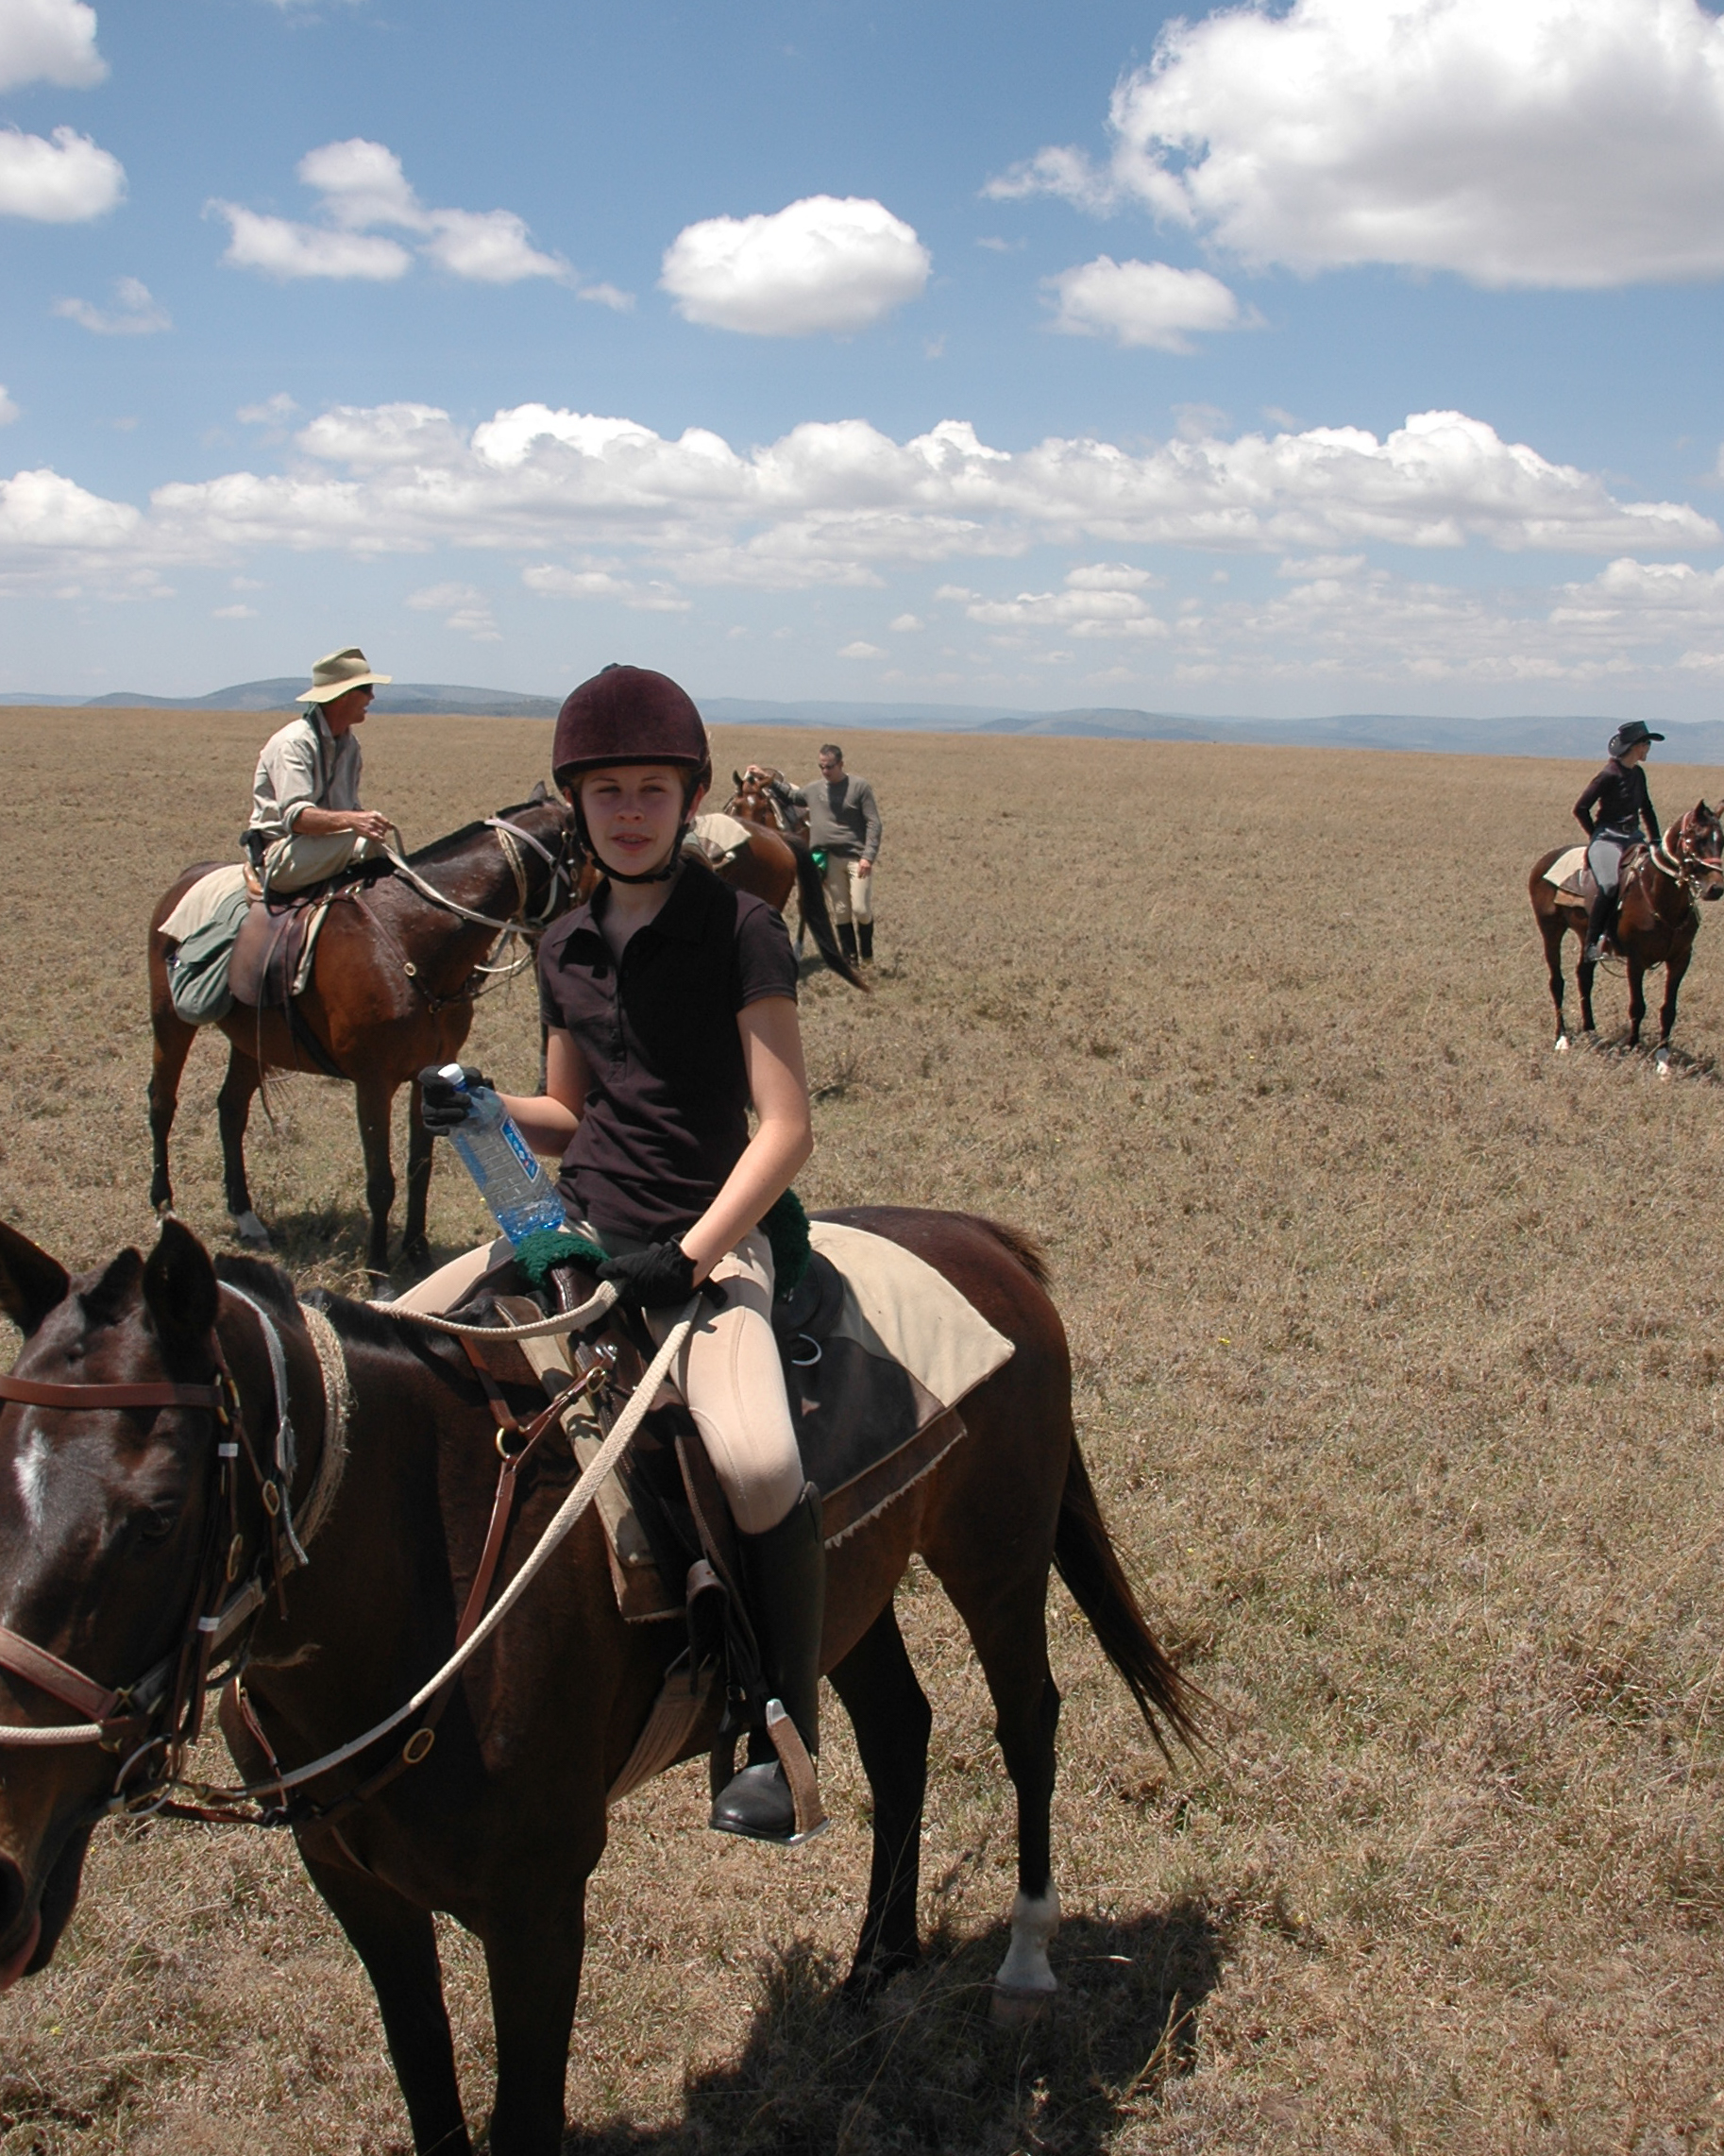 Catherine, aged 14, riding with the great migration across the Masai Mara, in Kenya.